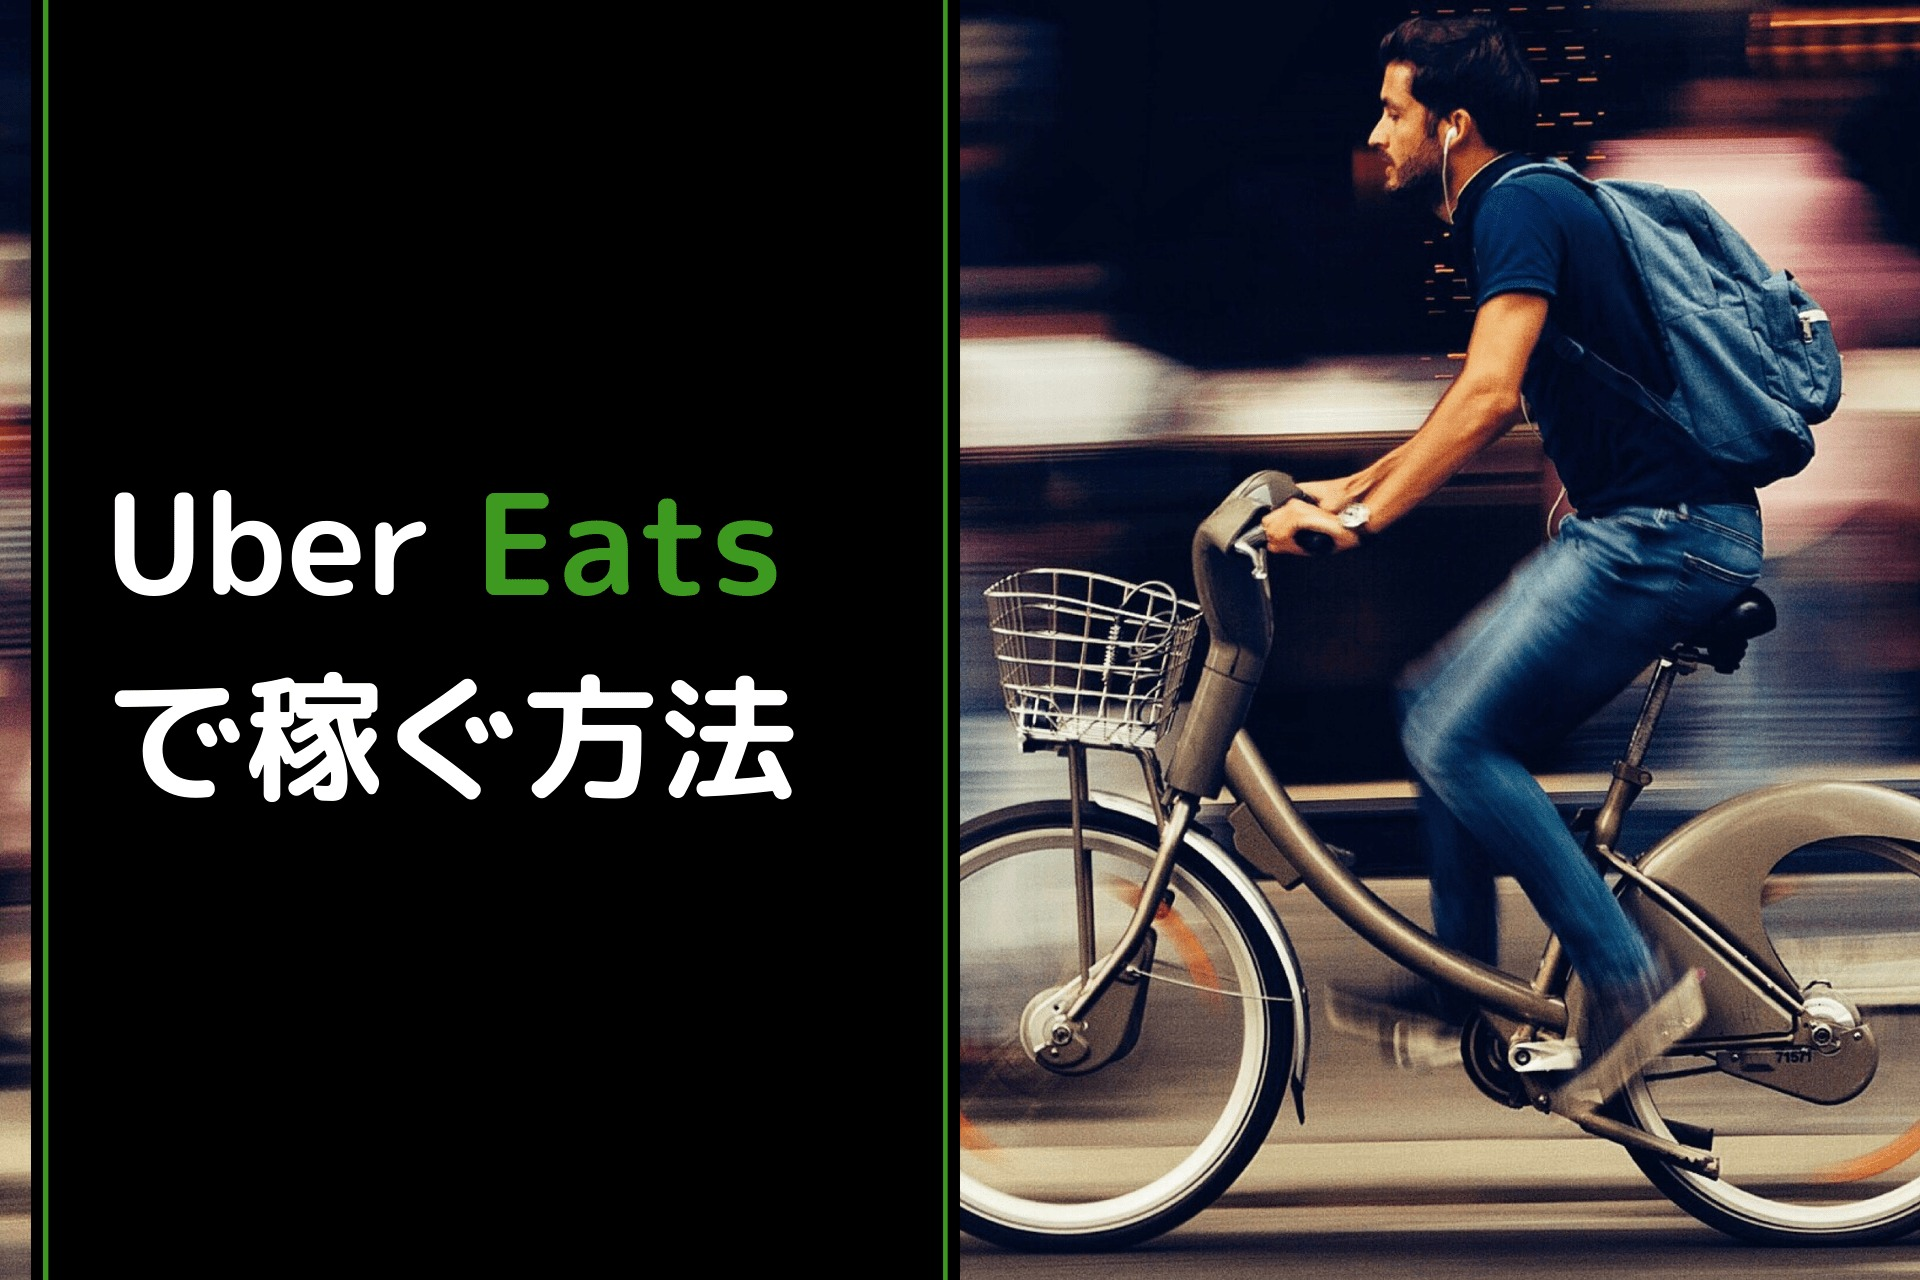 Uber Eats配達パートナーはどのくらい稼げる?始める前にメリット、デメリット、登録方法を解説!